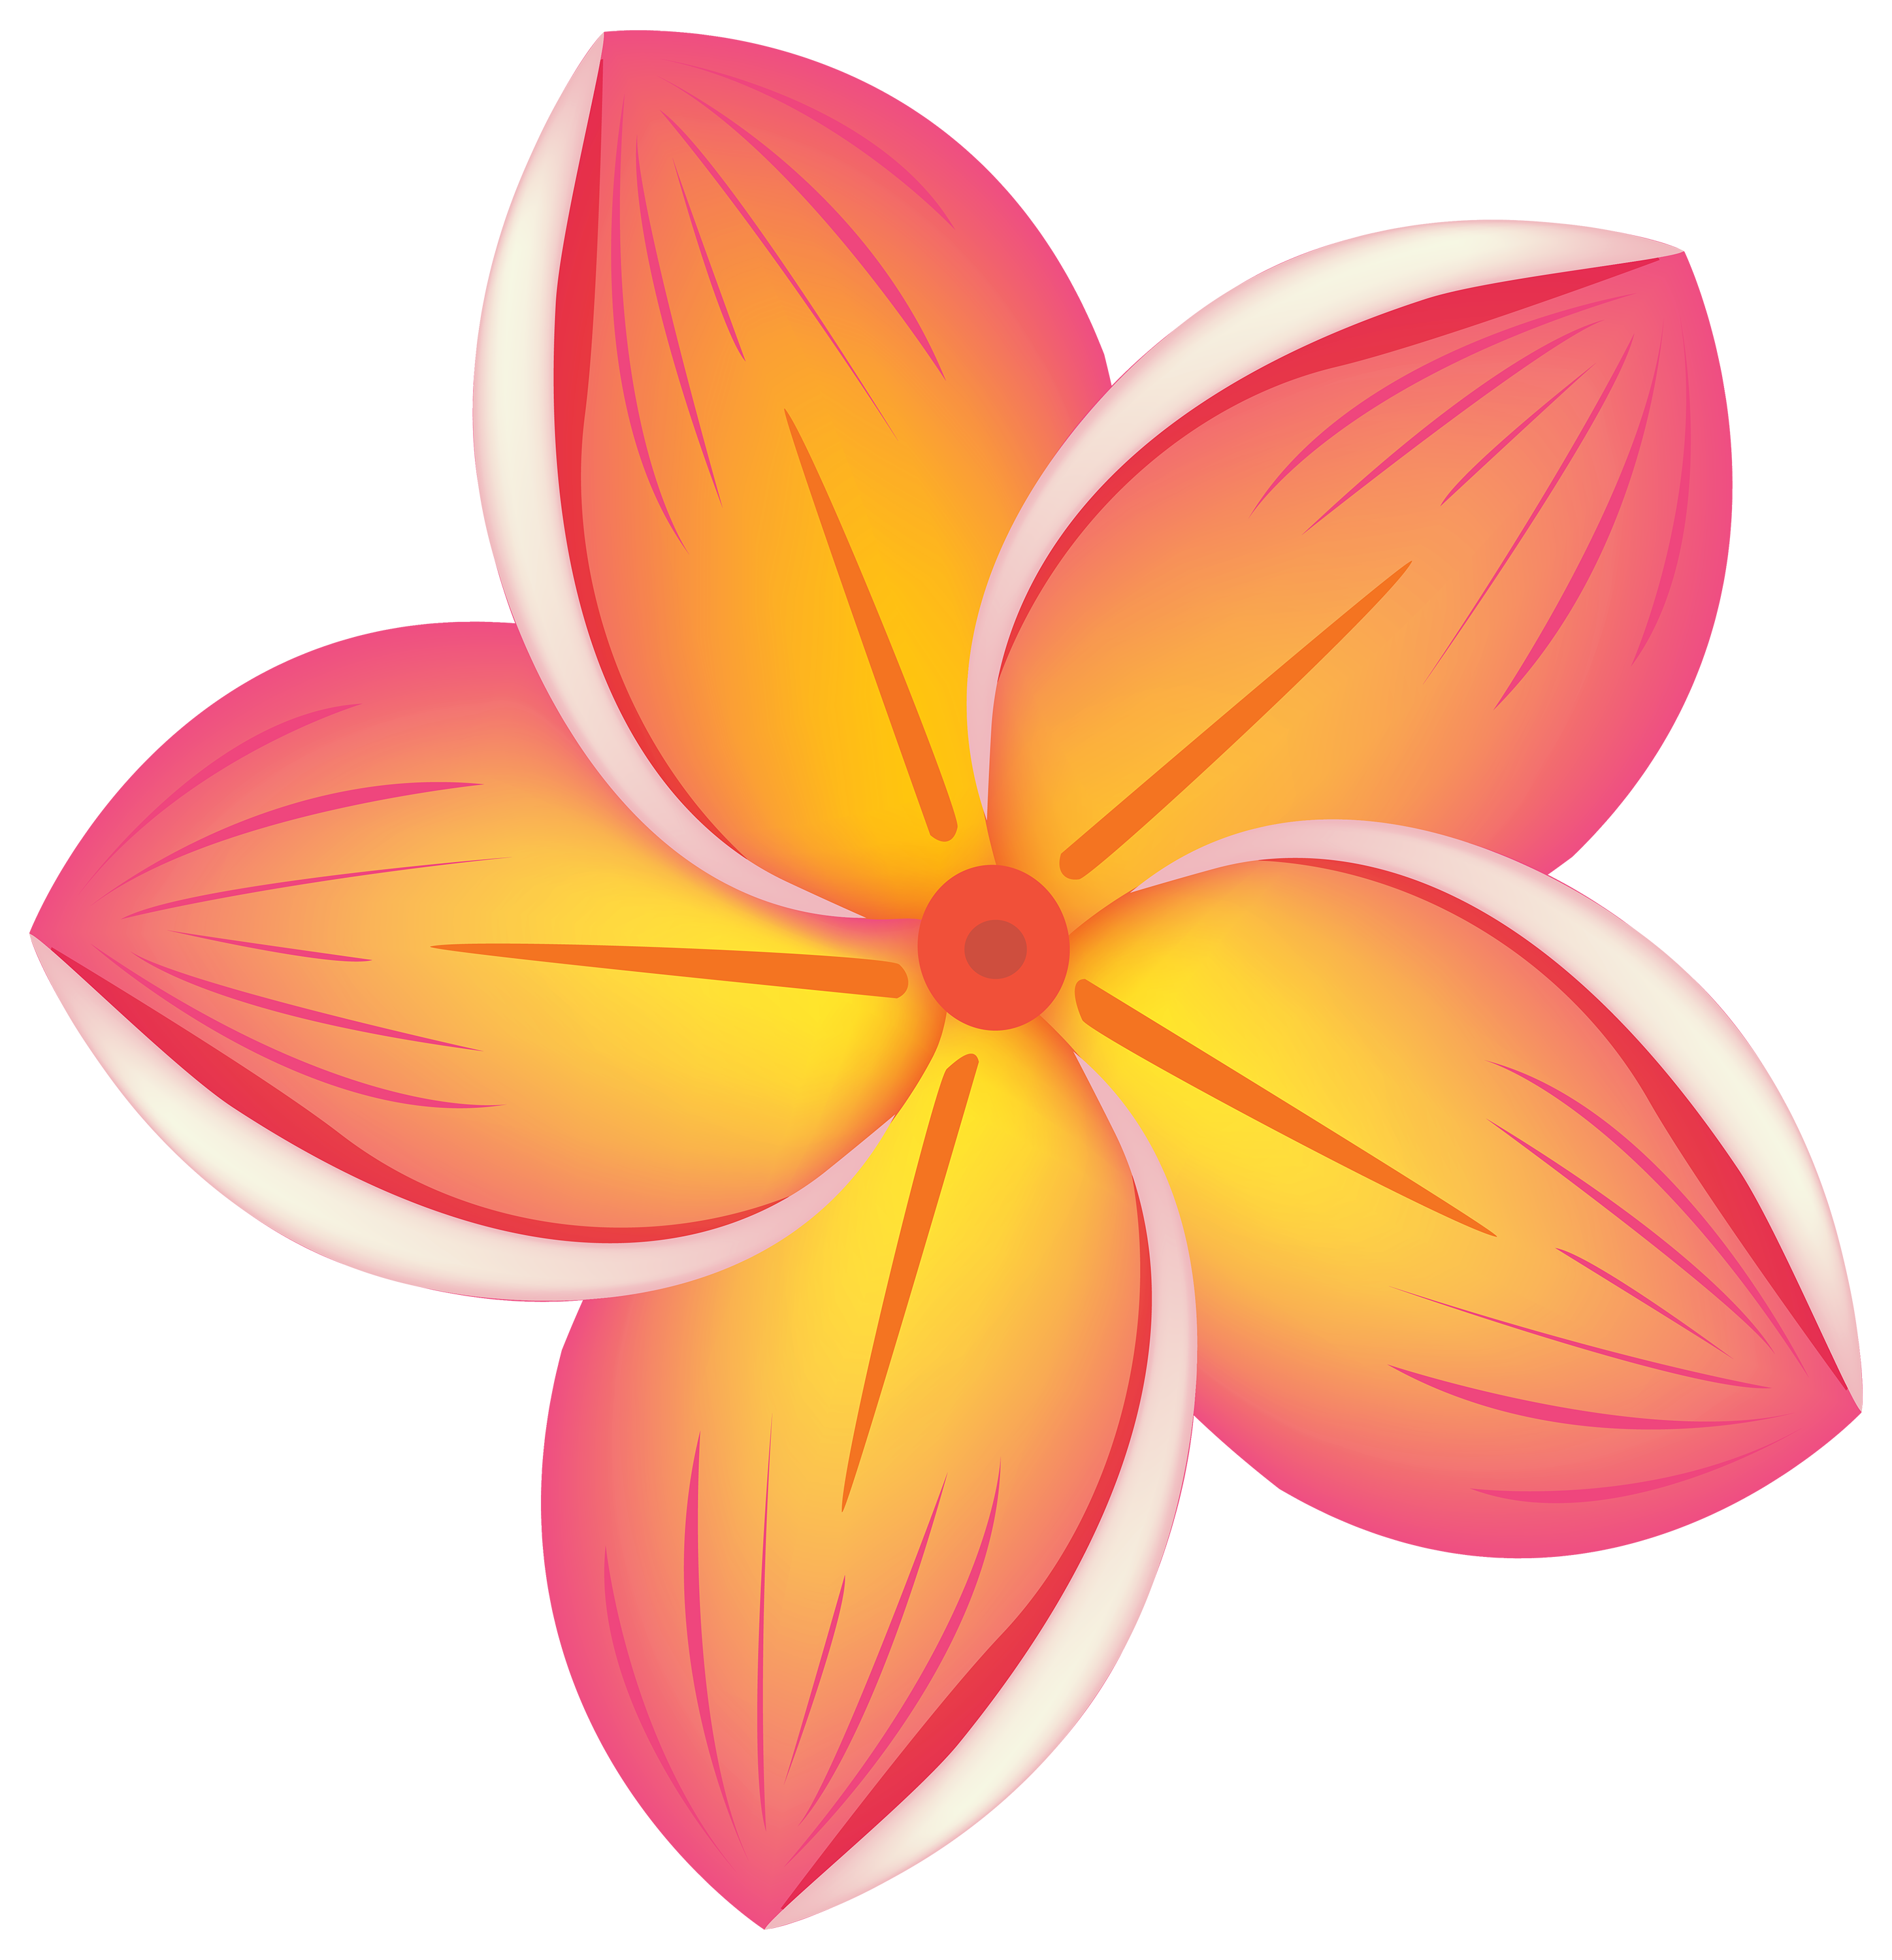 Flower clipart orange jpg black and white stock Image result for flowers | Exhibit design/Practice studio 1 ... jpg black and white stock